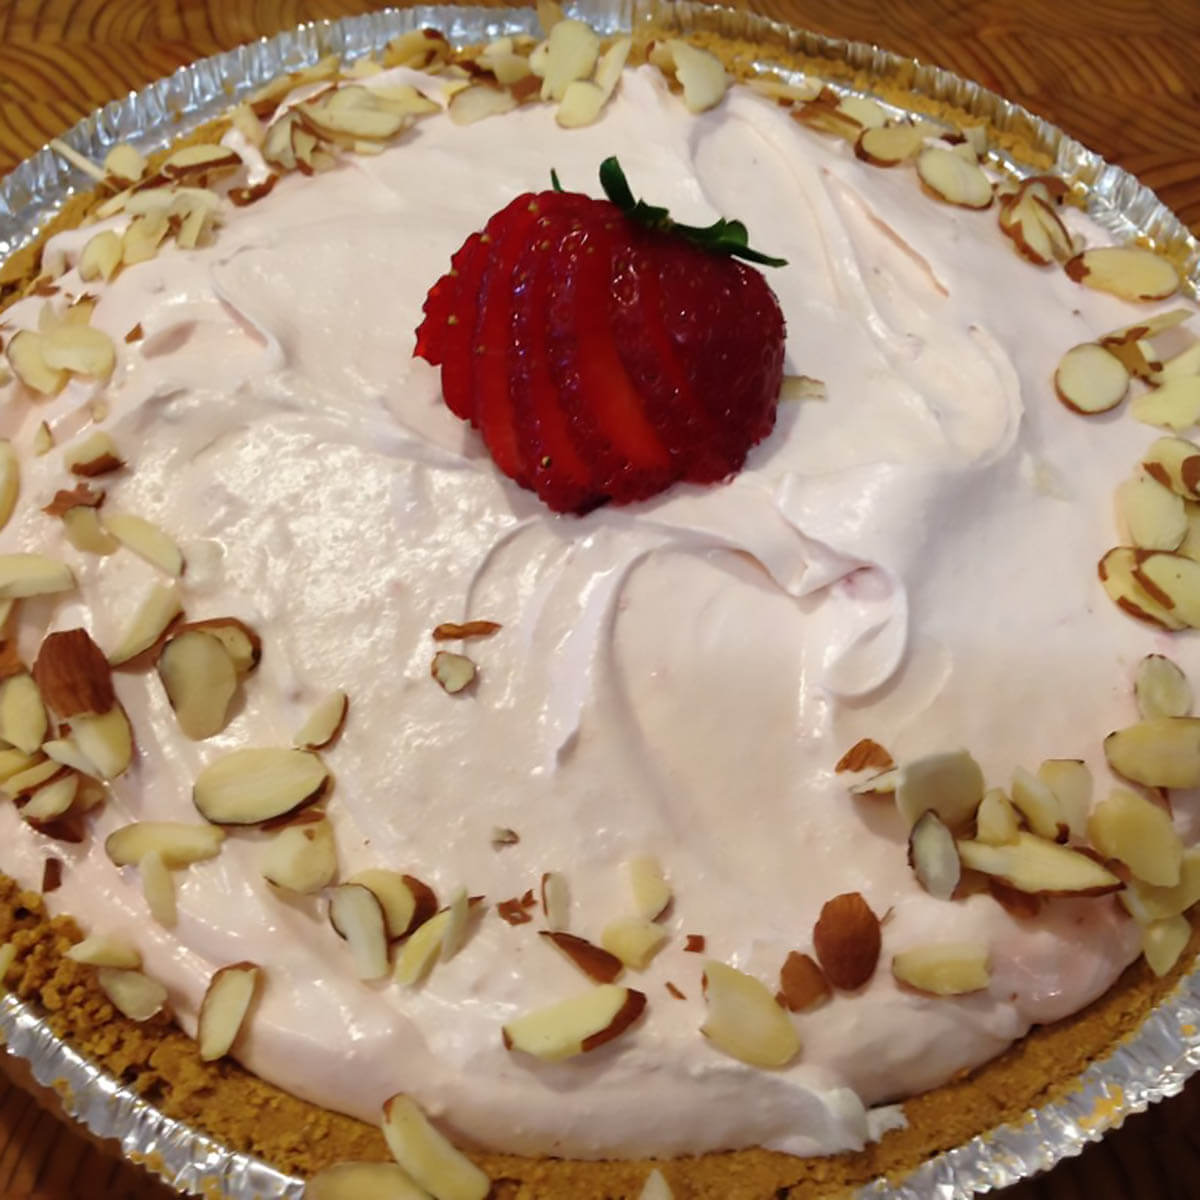 No bake strawberry Pie topped with almonds and sliced strawberries.